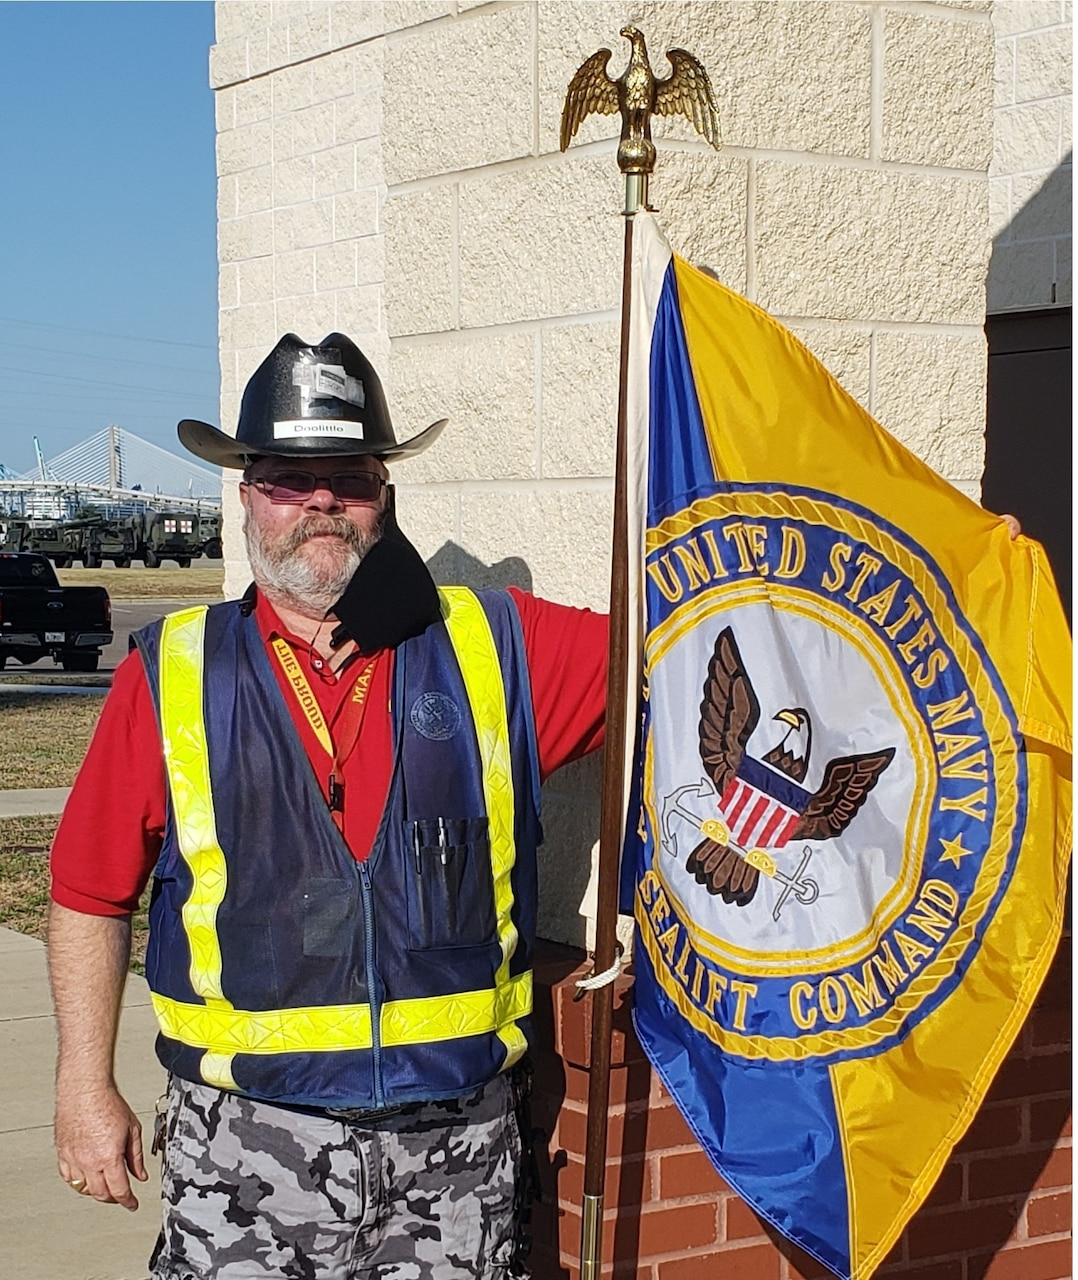 Dean Doolittle, is one of Military Sealift Command Atlantic's mission critical employees serving during the COVID-19 pandemic that has swept the nation in 2020.